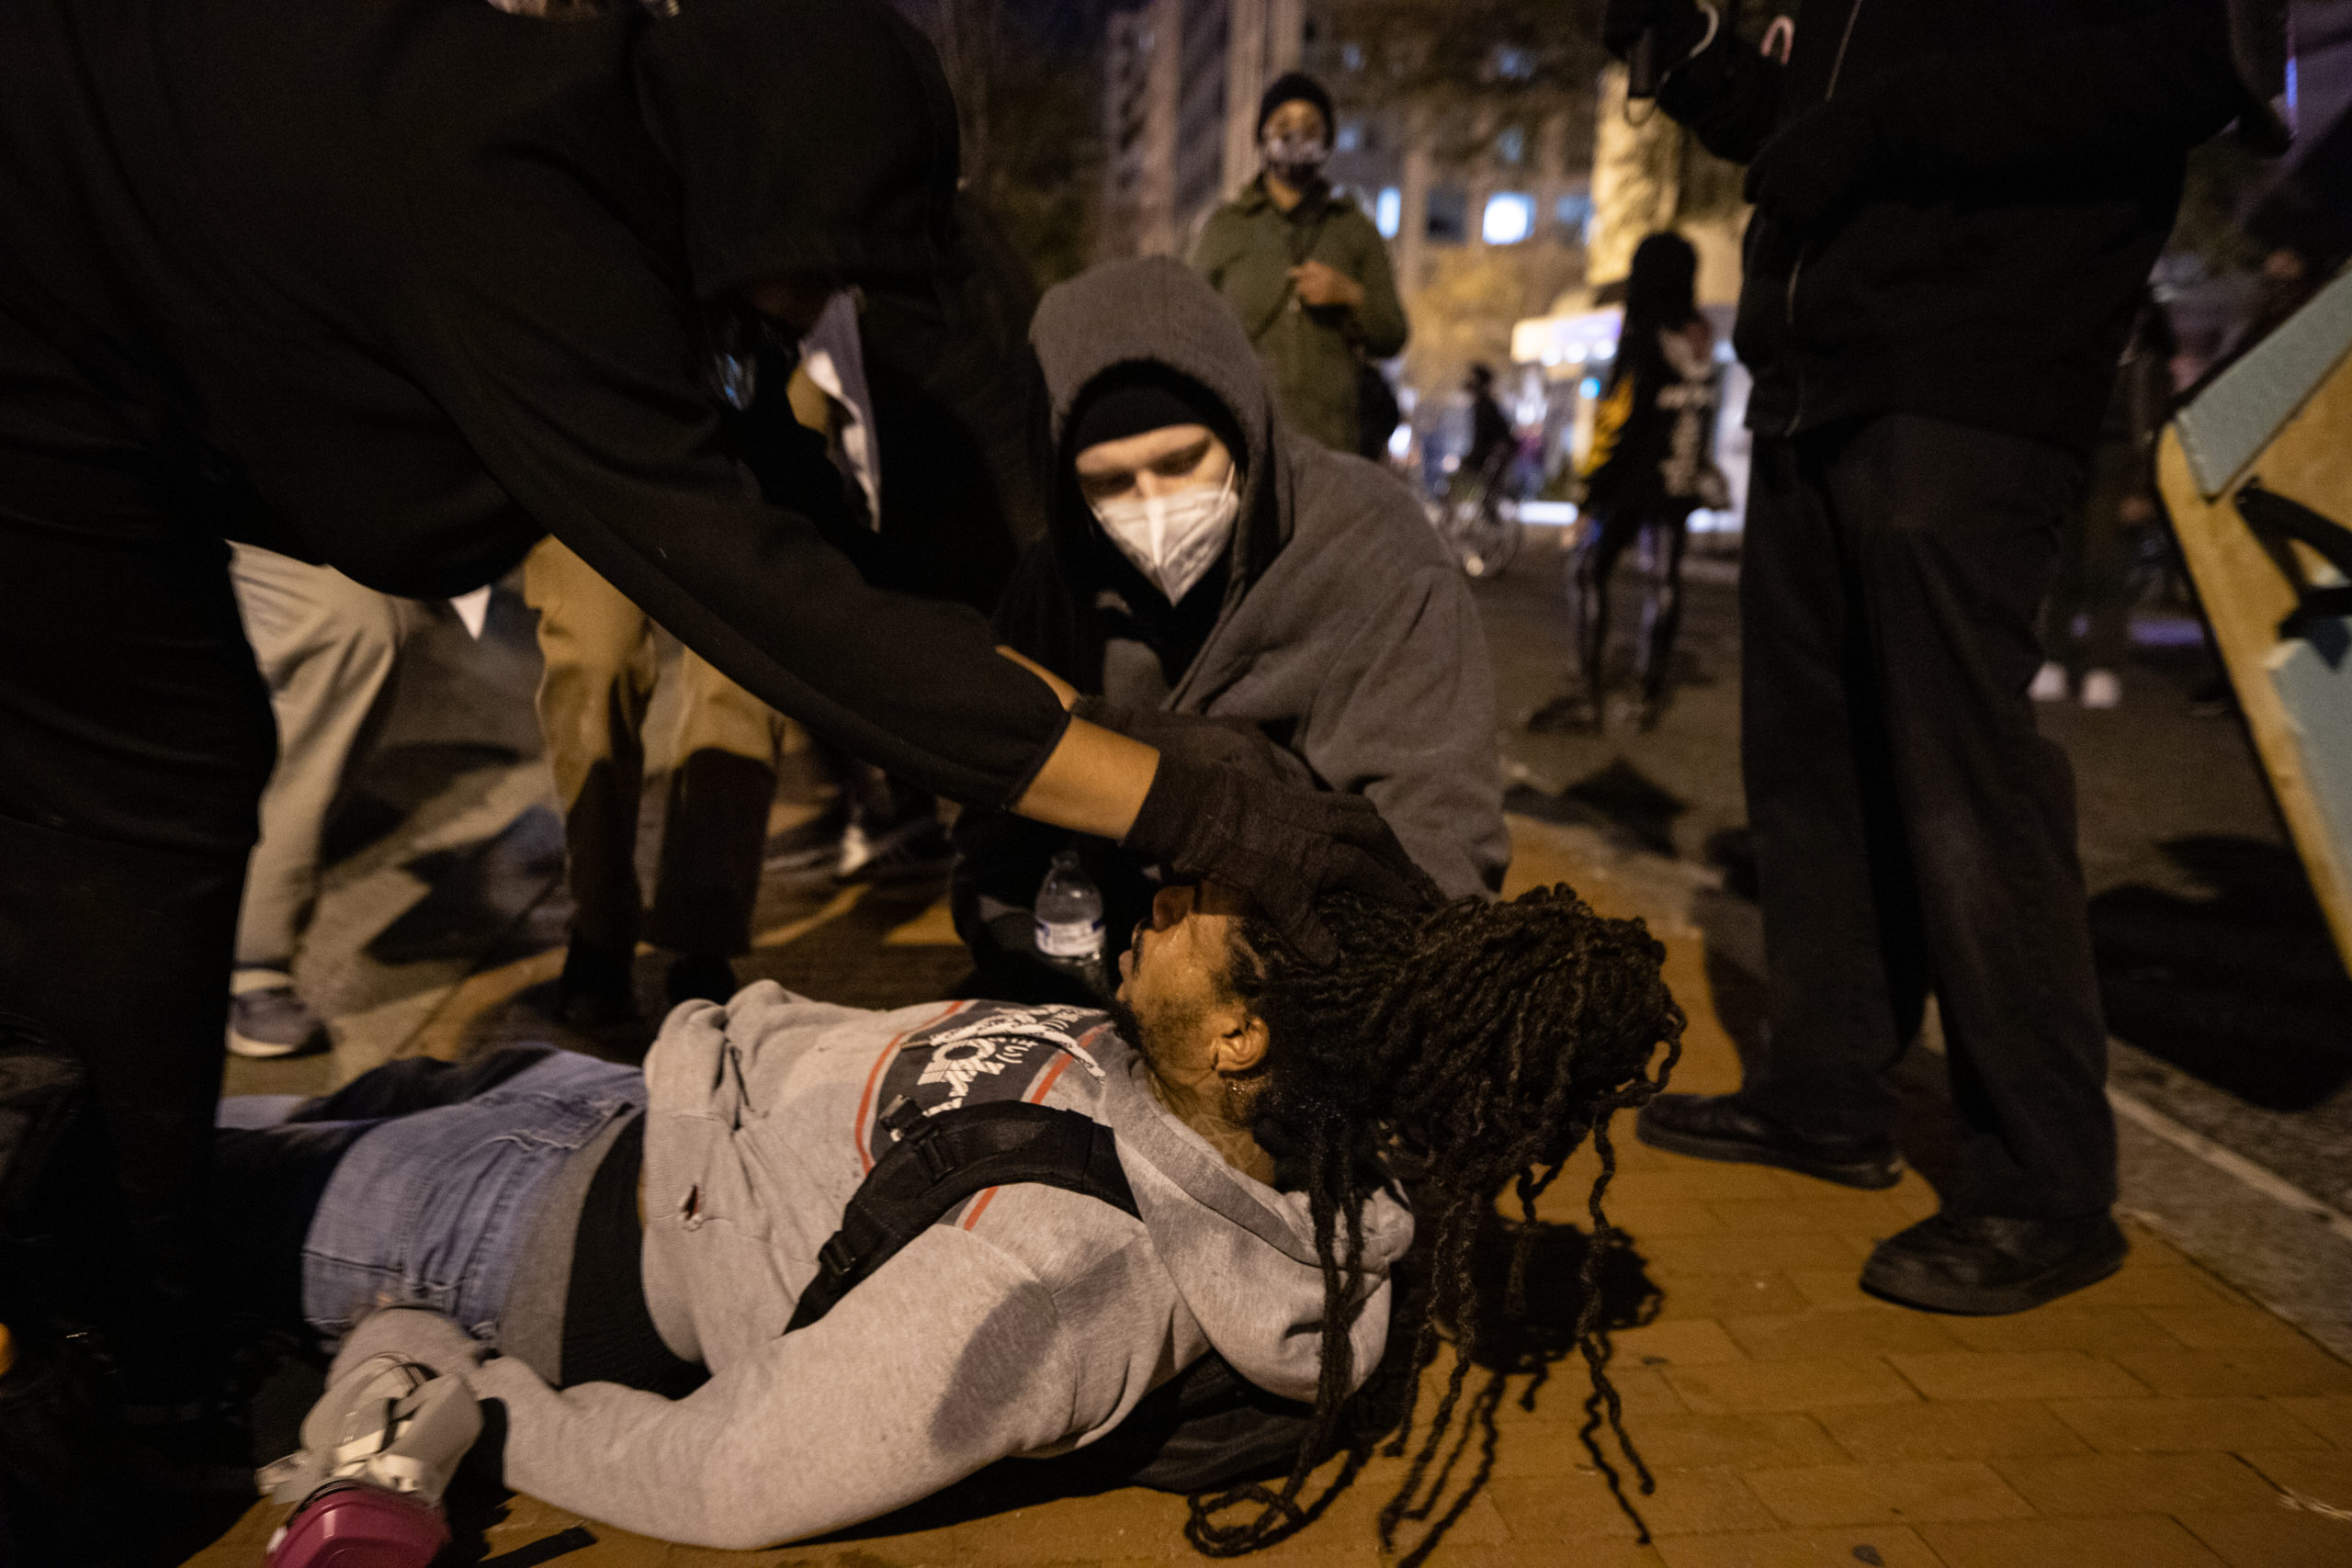 Protesters attend to a man who was maced by Metropolitan Police Department officers near Black Lives Matter Plaza in Washington, D.C. on Dec. 12, 2020. (Photo: Kaylee Greenlee - Daily Caller News Foundation)